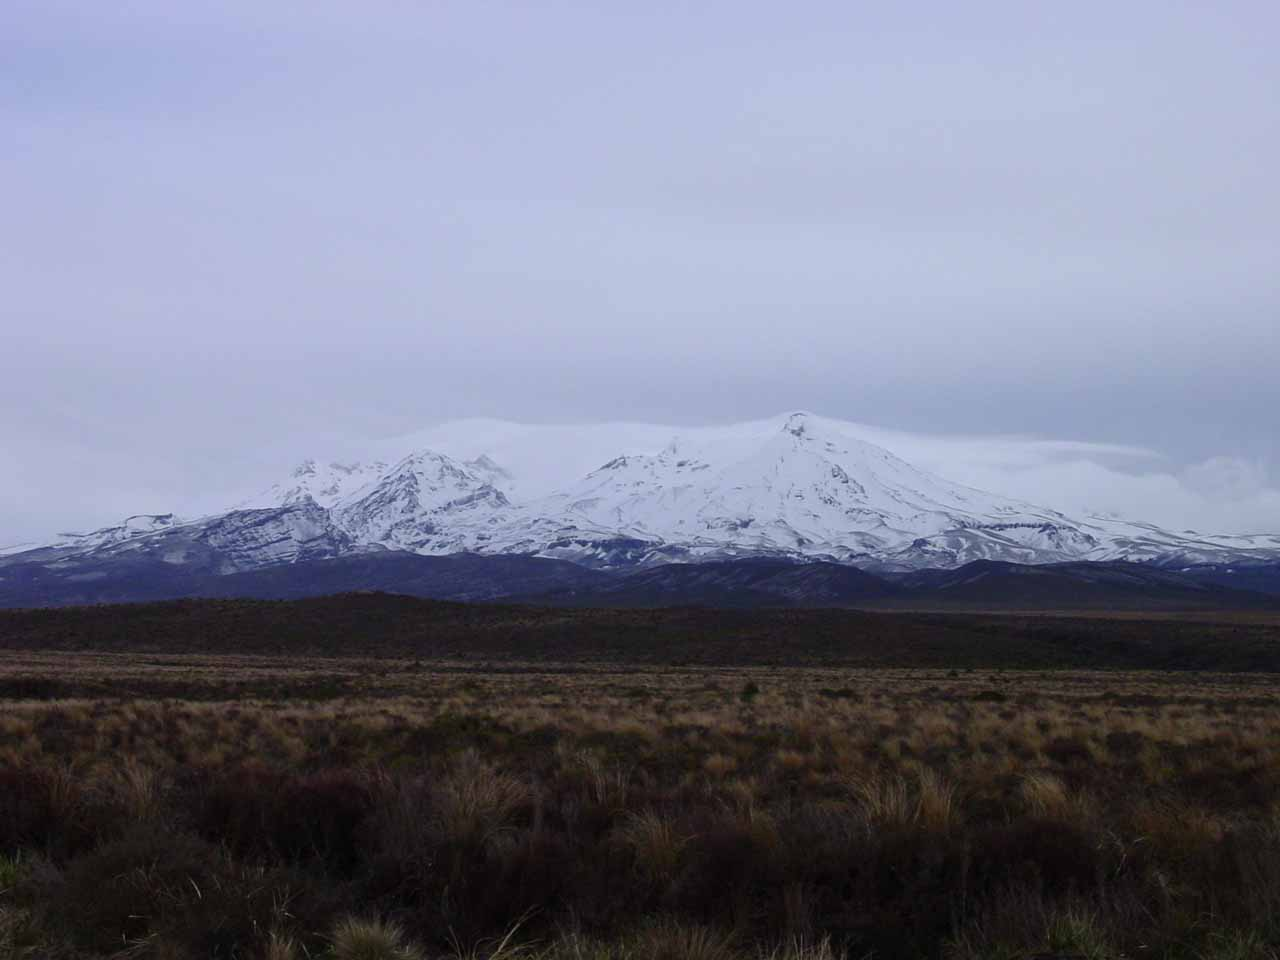 On the way to Ohakune and Mangawhero Falls, we took the Desert Rd, which provided these views of the snowy volcanic peaks of Tongariro National Park